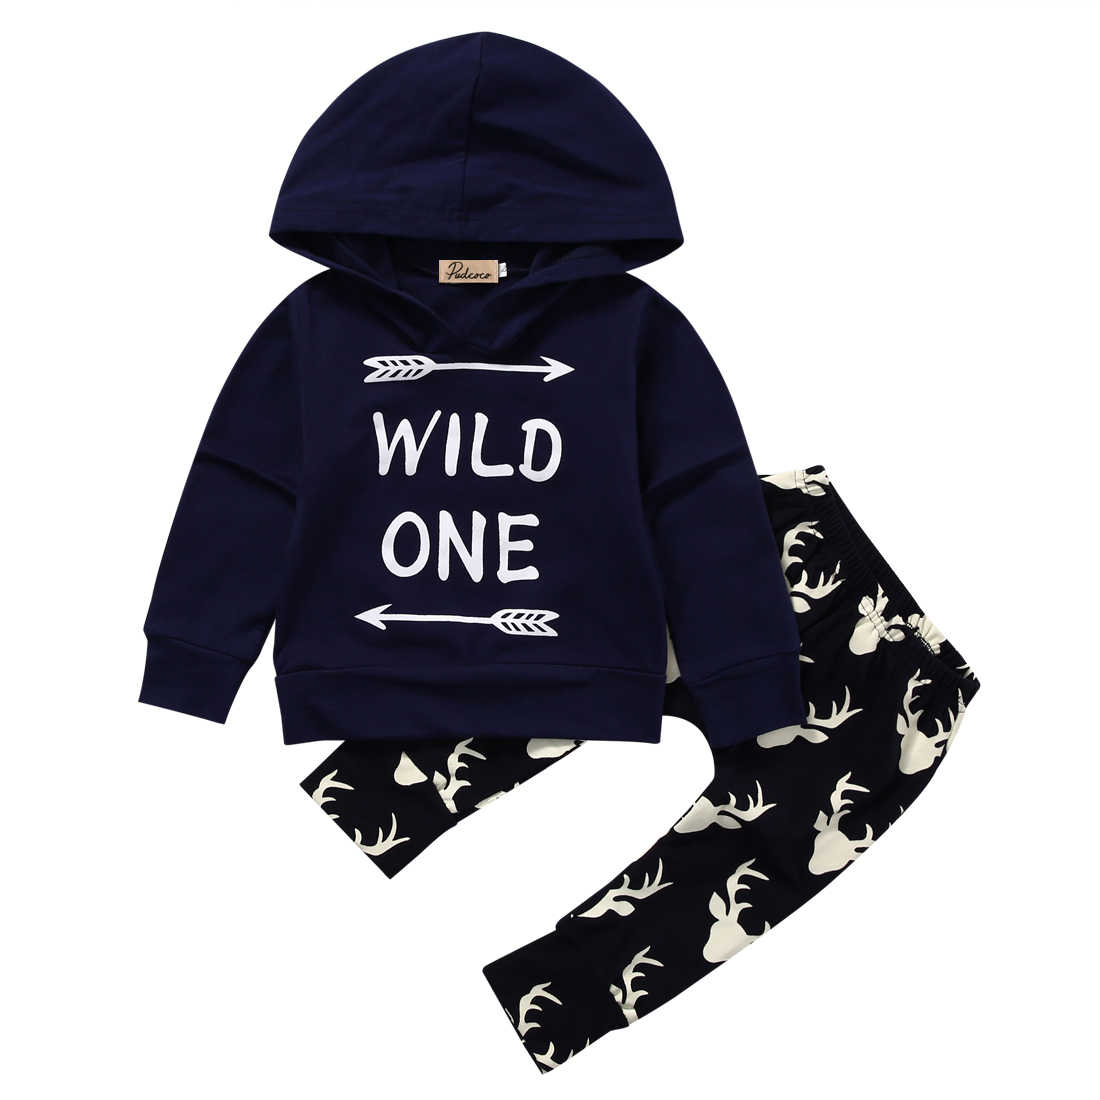 4437ffba5 Detail Feedback Questions about Newborn Baby Boys Tops Wild One Hoodies Long  Deer Pants Outfits Set Clothes Infant Kids Boy Clothing Children Kid  Garments ...